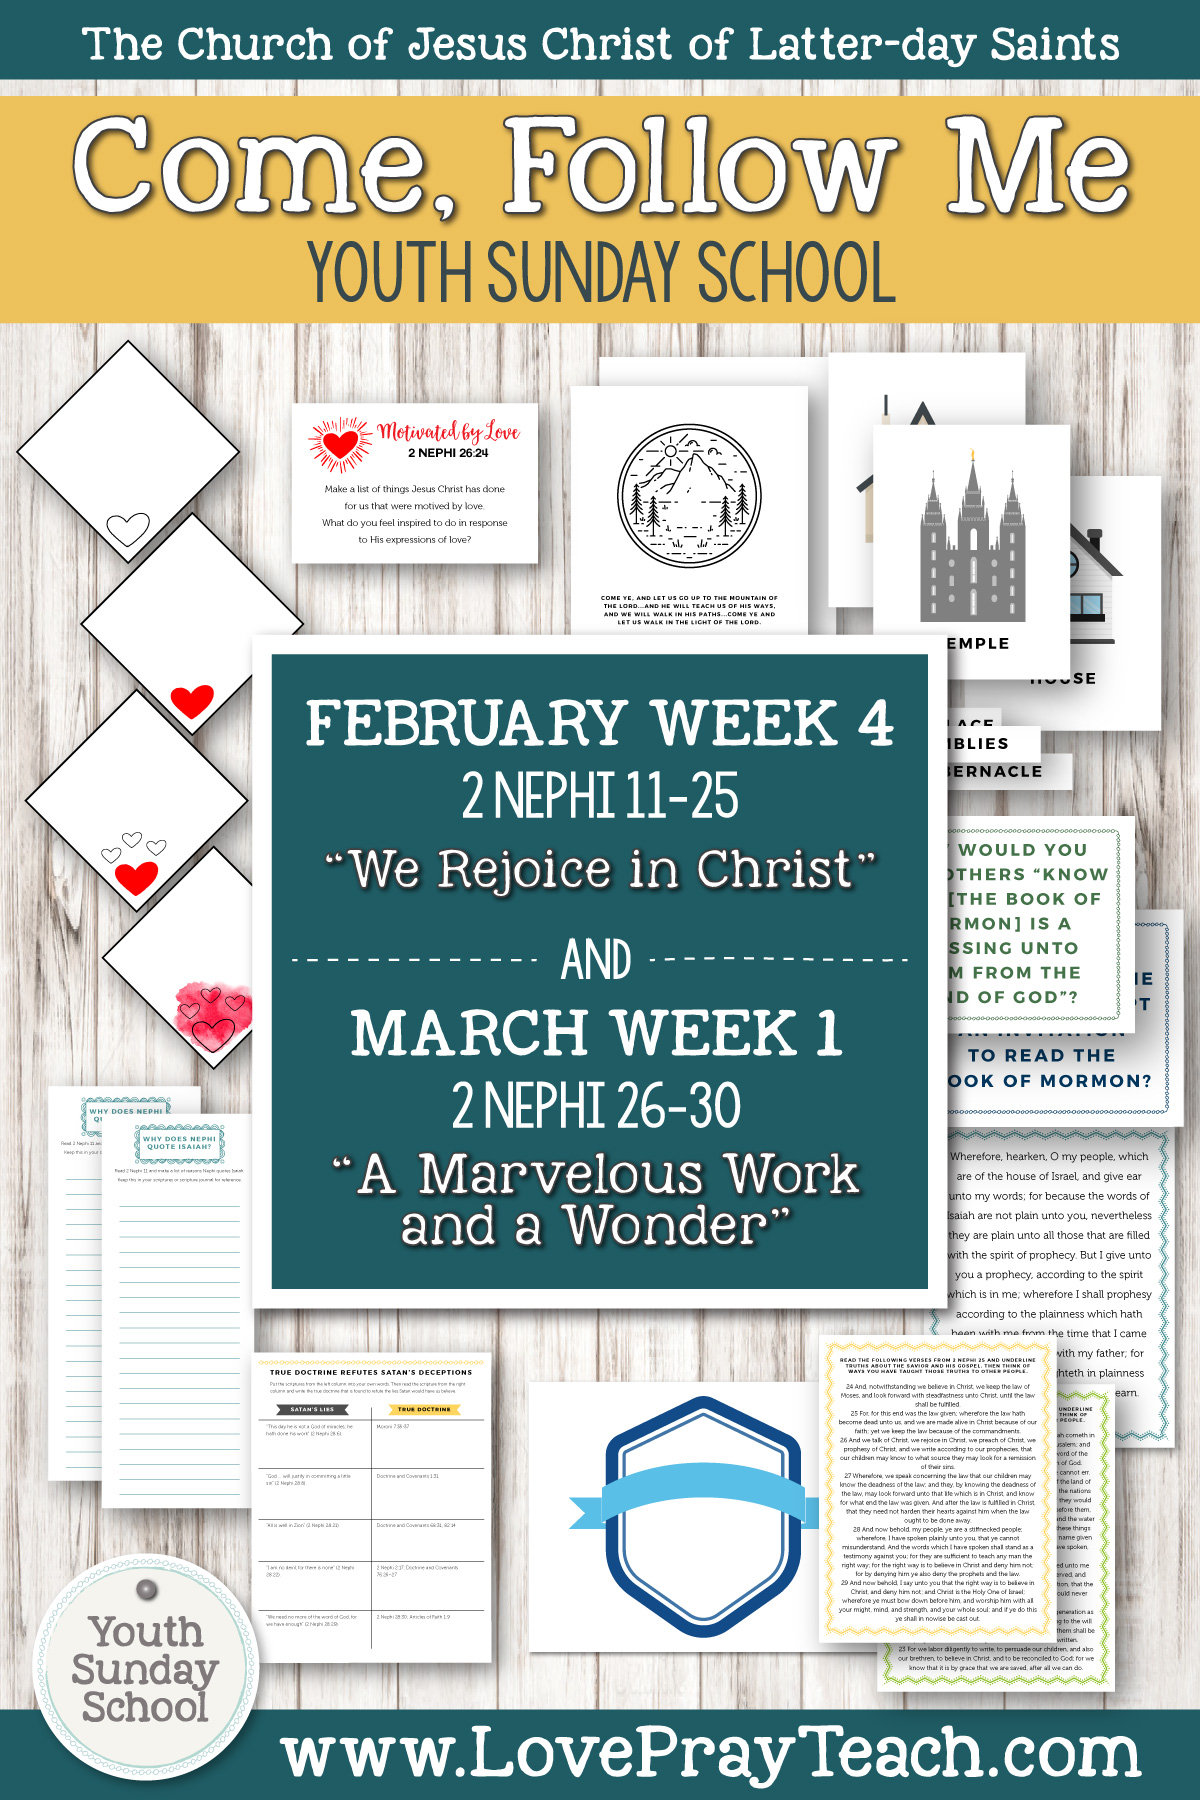 "Youth Sunday School Come, Follow Me Book of Mormon 2020 February 17–23 2 Nephi 11–25 ""We Rejoice in Christ"" AND February 24–March 1 2 Nephi 26–30 ""A Marvelous Work and a Wonder"" Printable Lesson Packet for Latter-day Saints"